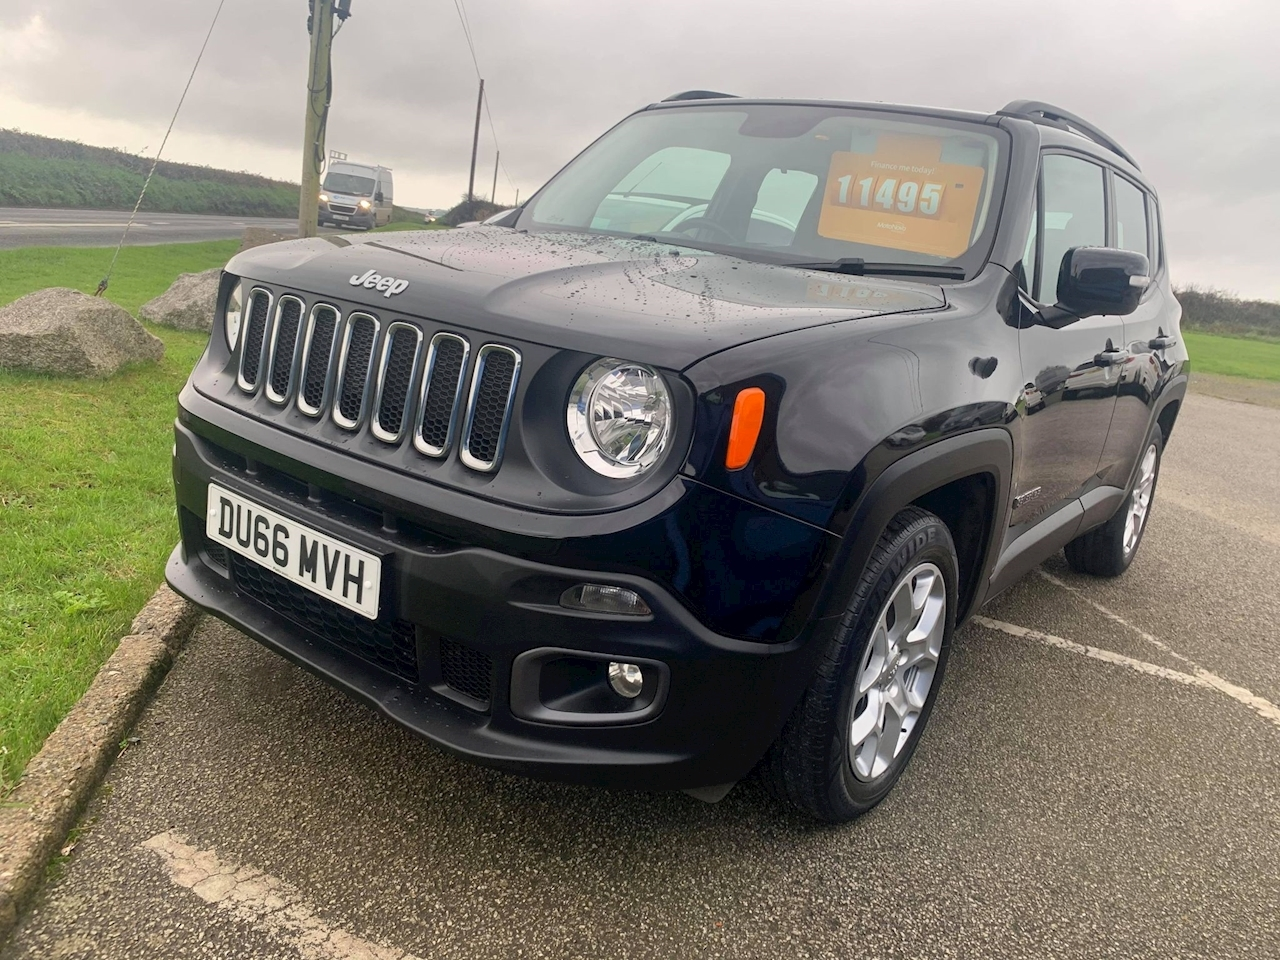 Jeep Renegade Renegade My16 1.6 Multijet Ii 120hp Longitude Estate 1.6 Manual Diesel